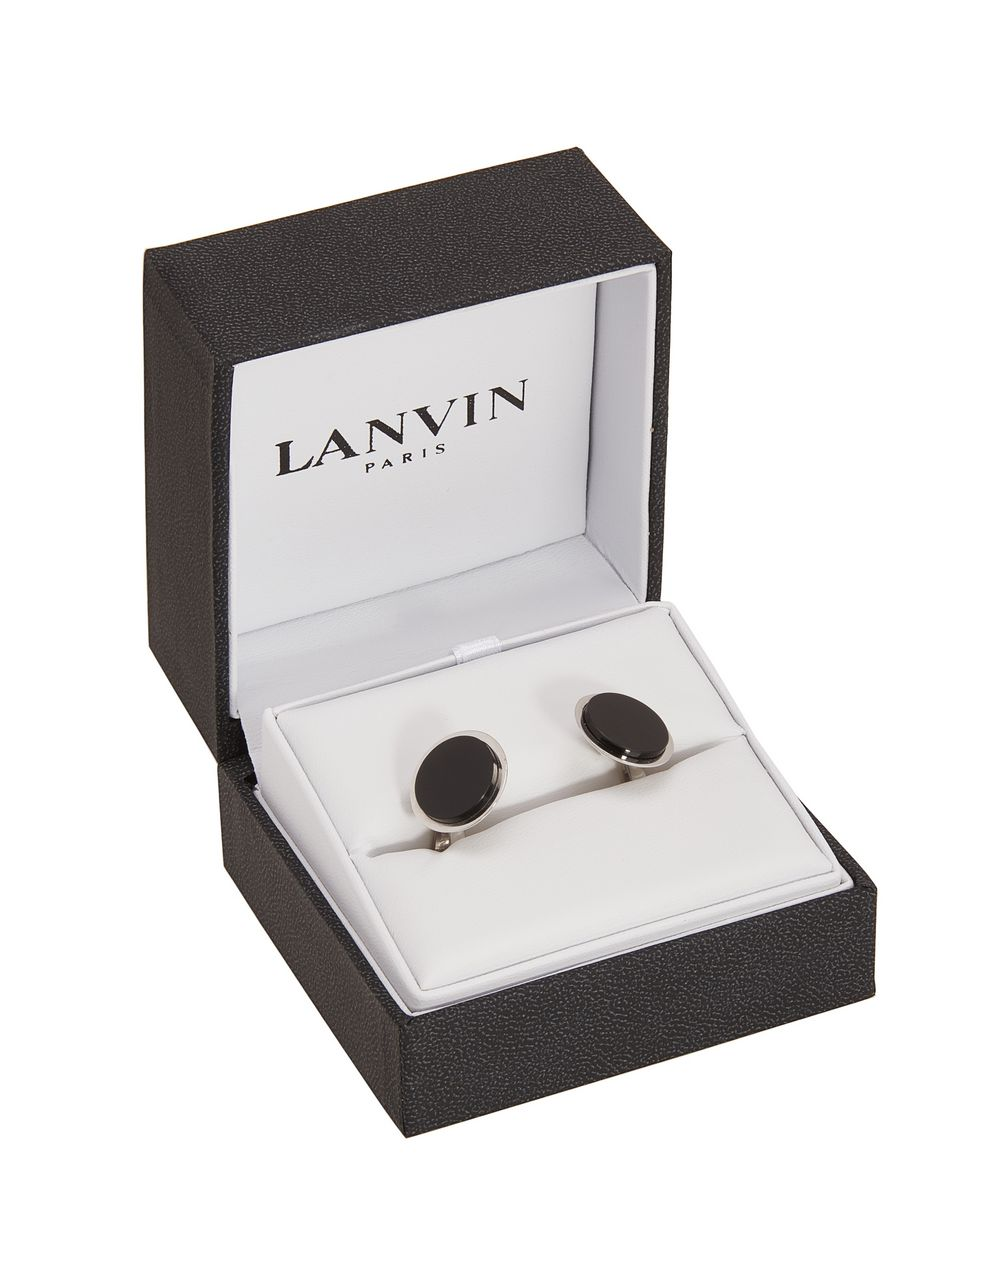 Rhodium-plated metal cuff links  - Lanvin